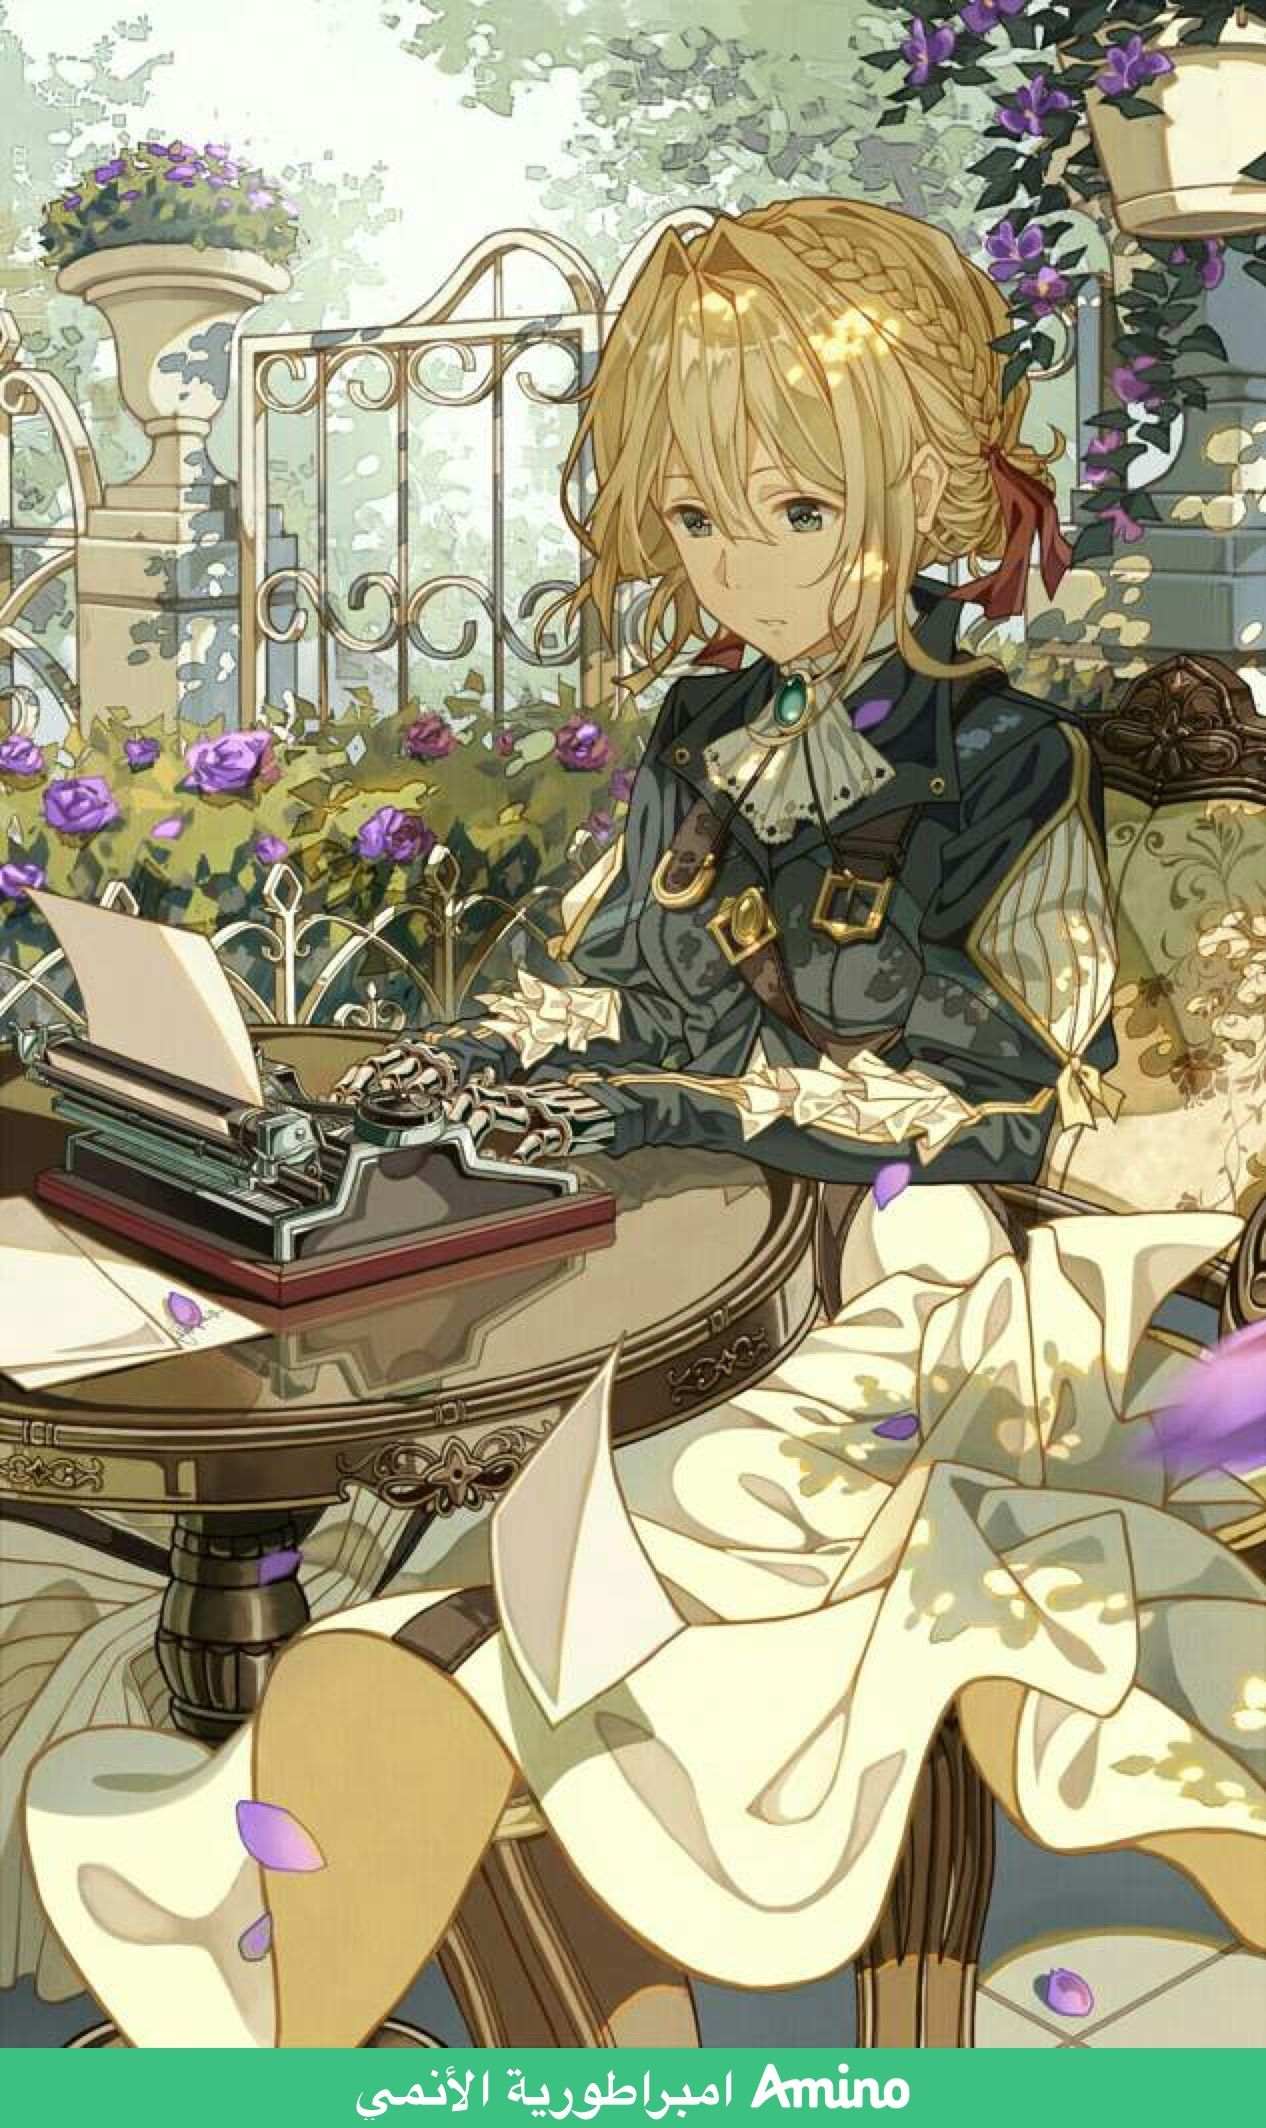 Pin by...... on Vailot Violet evergarden anime